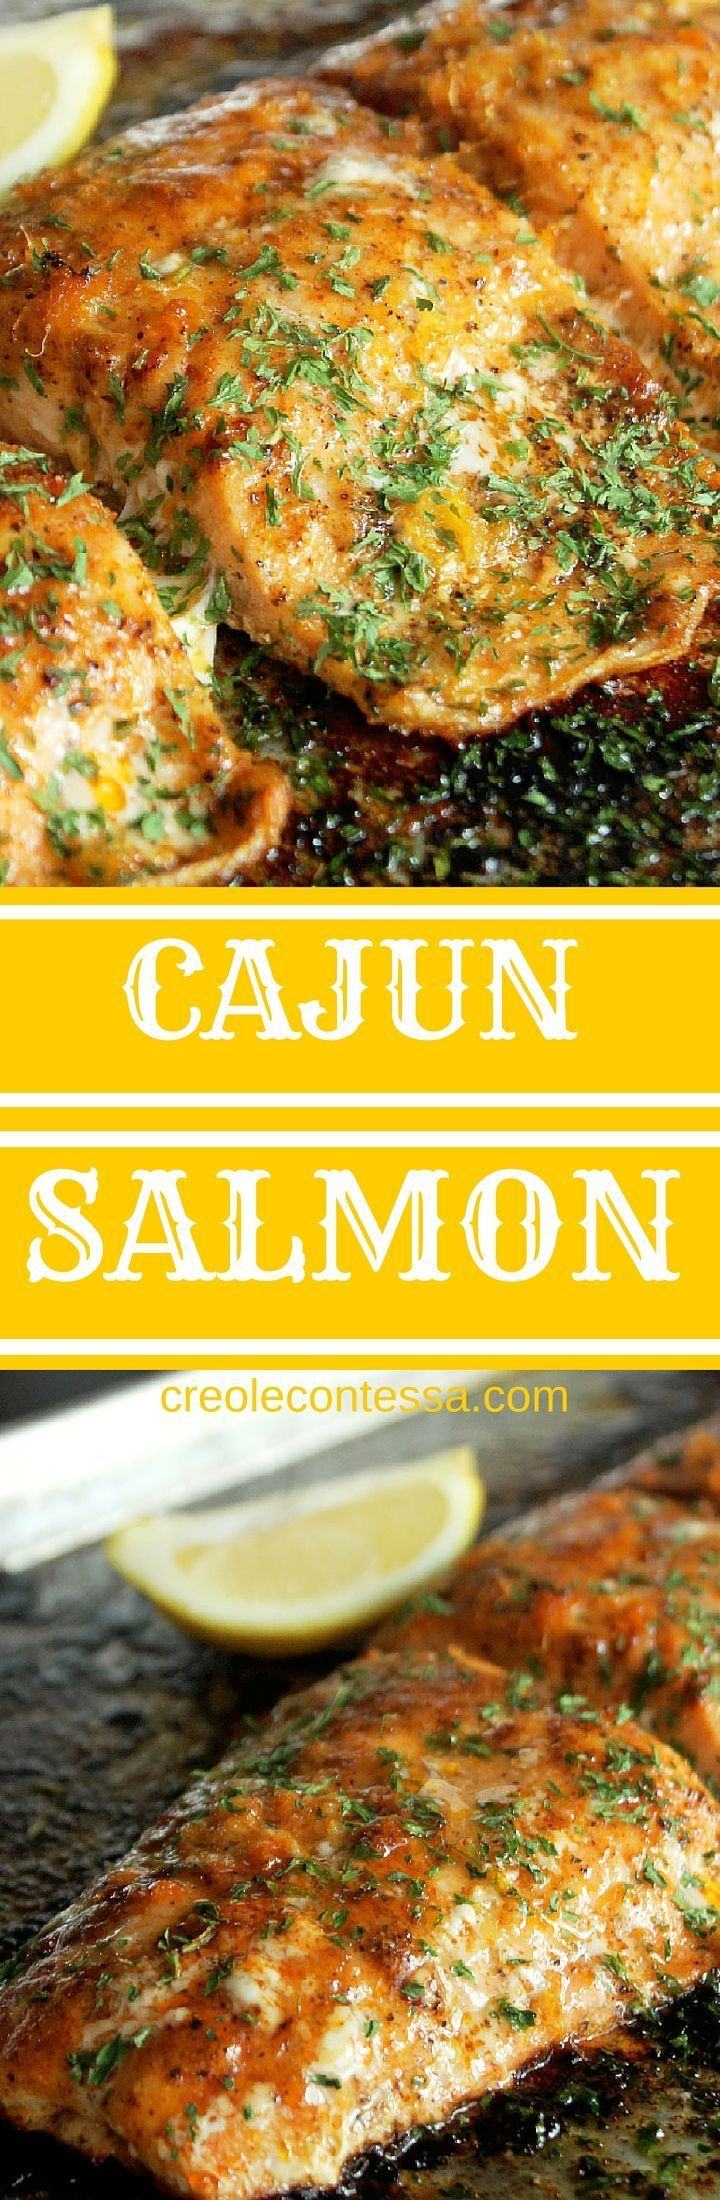 Cajun salmon creole contessa healthy recipes pinterest cajun cajun salmon creole contessa i love cajun food and my favorite fish is salmon my all time favorite meal that my john cooks for me is is blackened salmon forumfinder Images